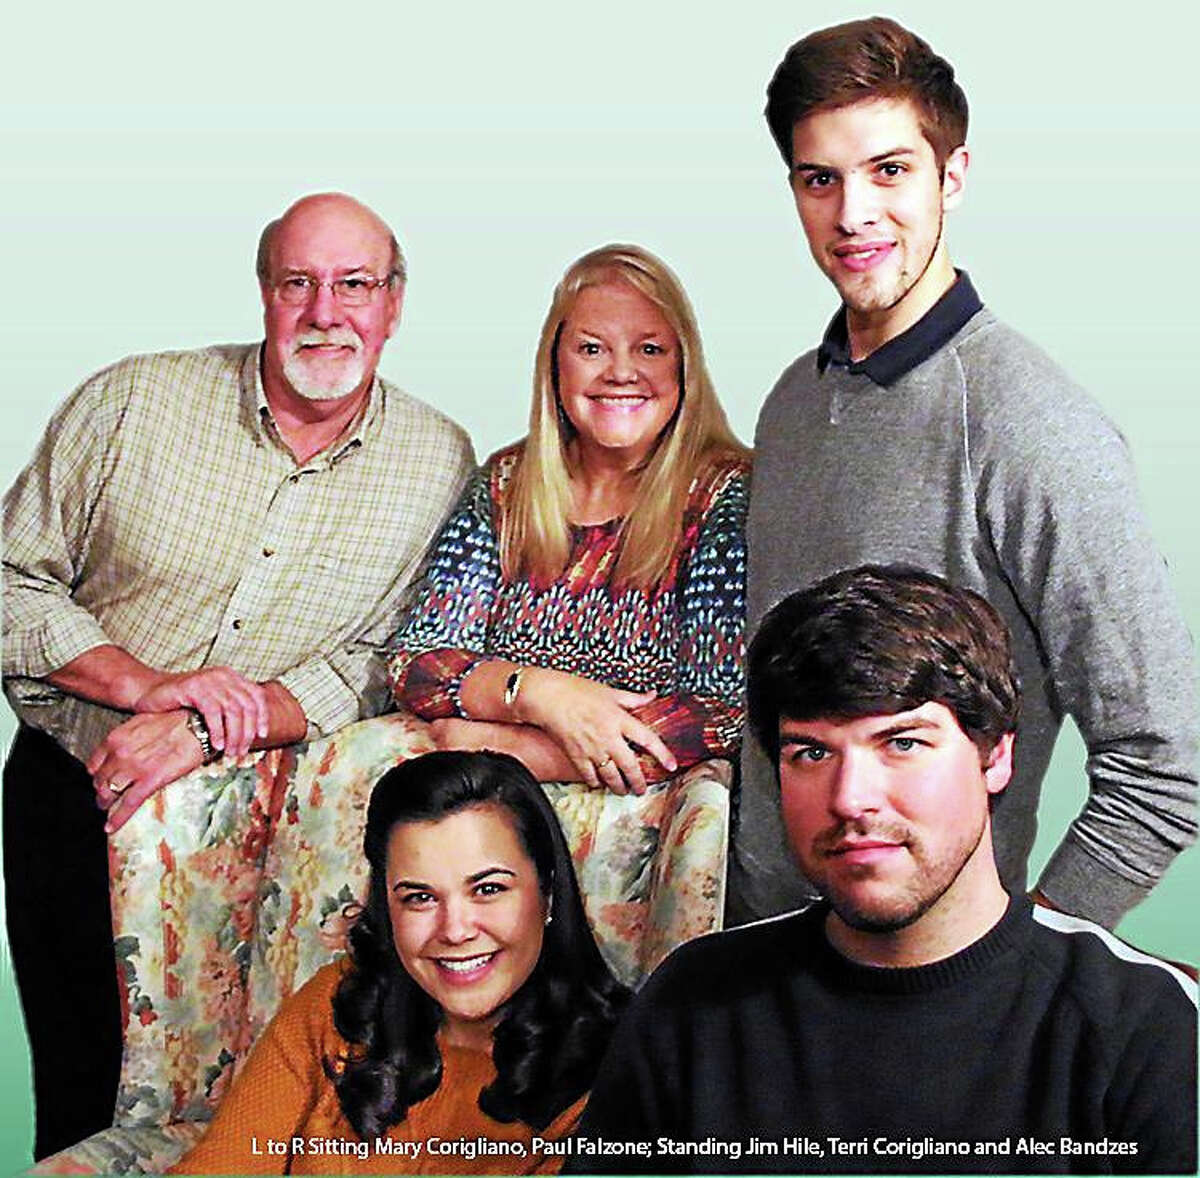 Contributed photoThe cast of Deathtrap includes Mary Corgliano and Paul Falzone, seated; and standing, from left, Jim Hile, Teri Corigliano and Alec Bandzes.